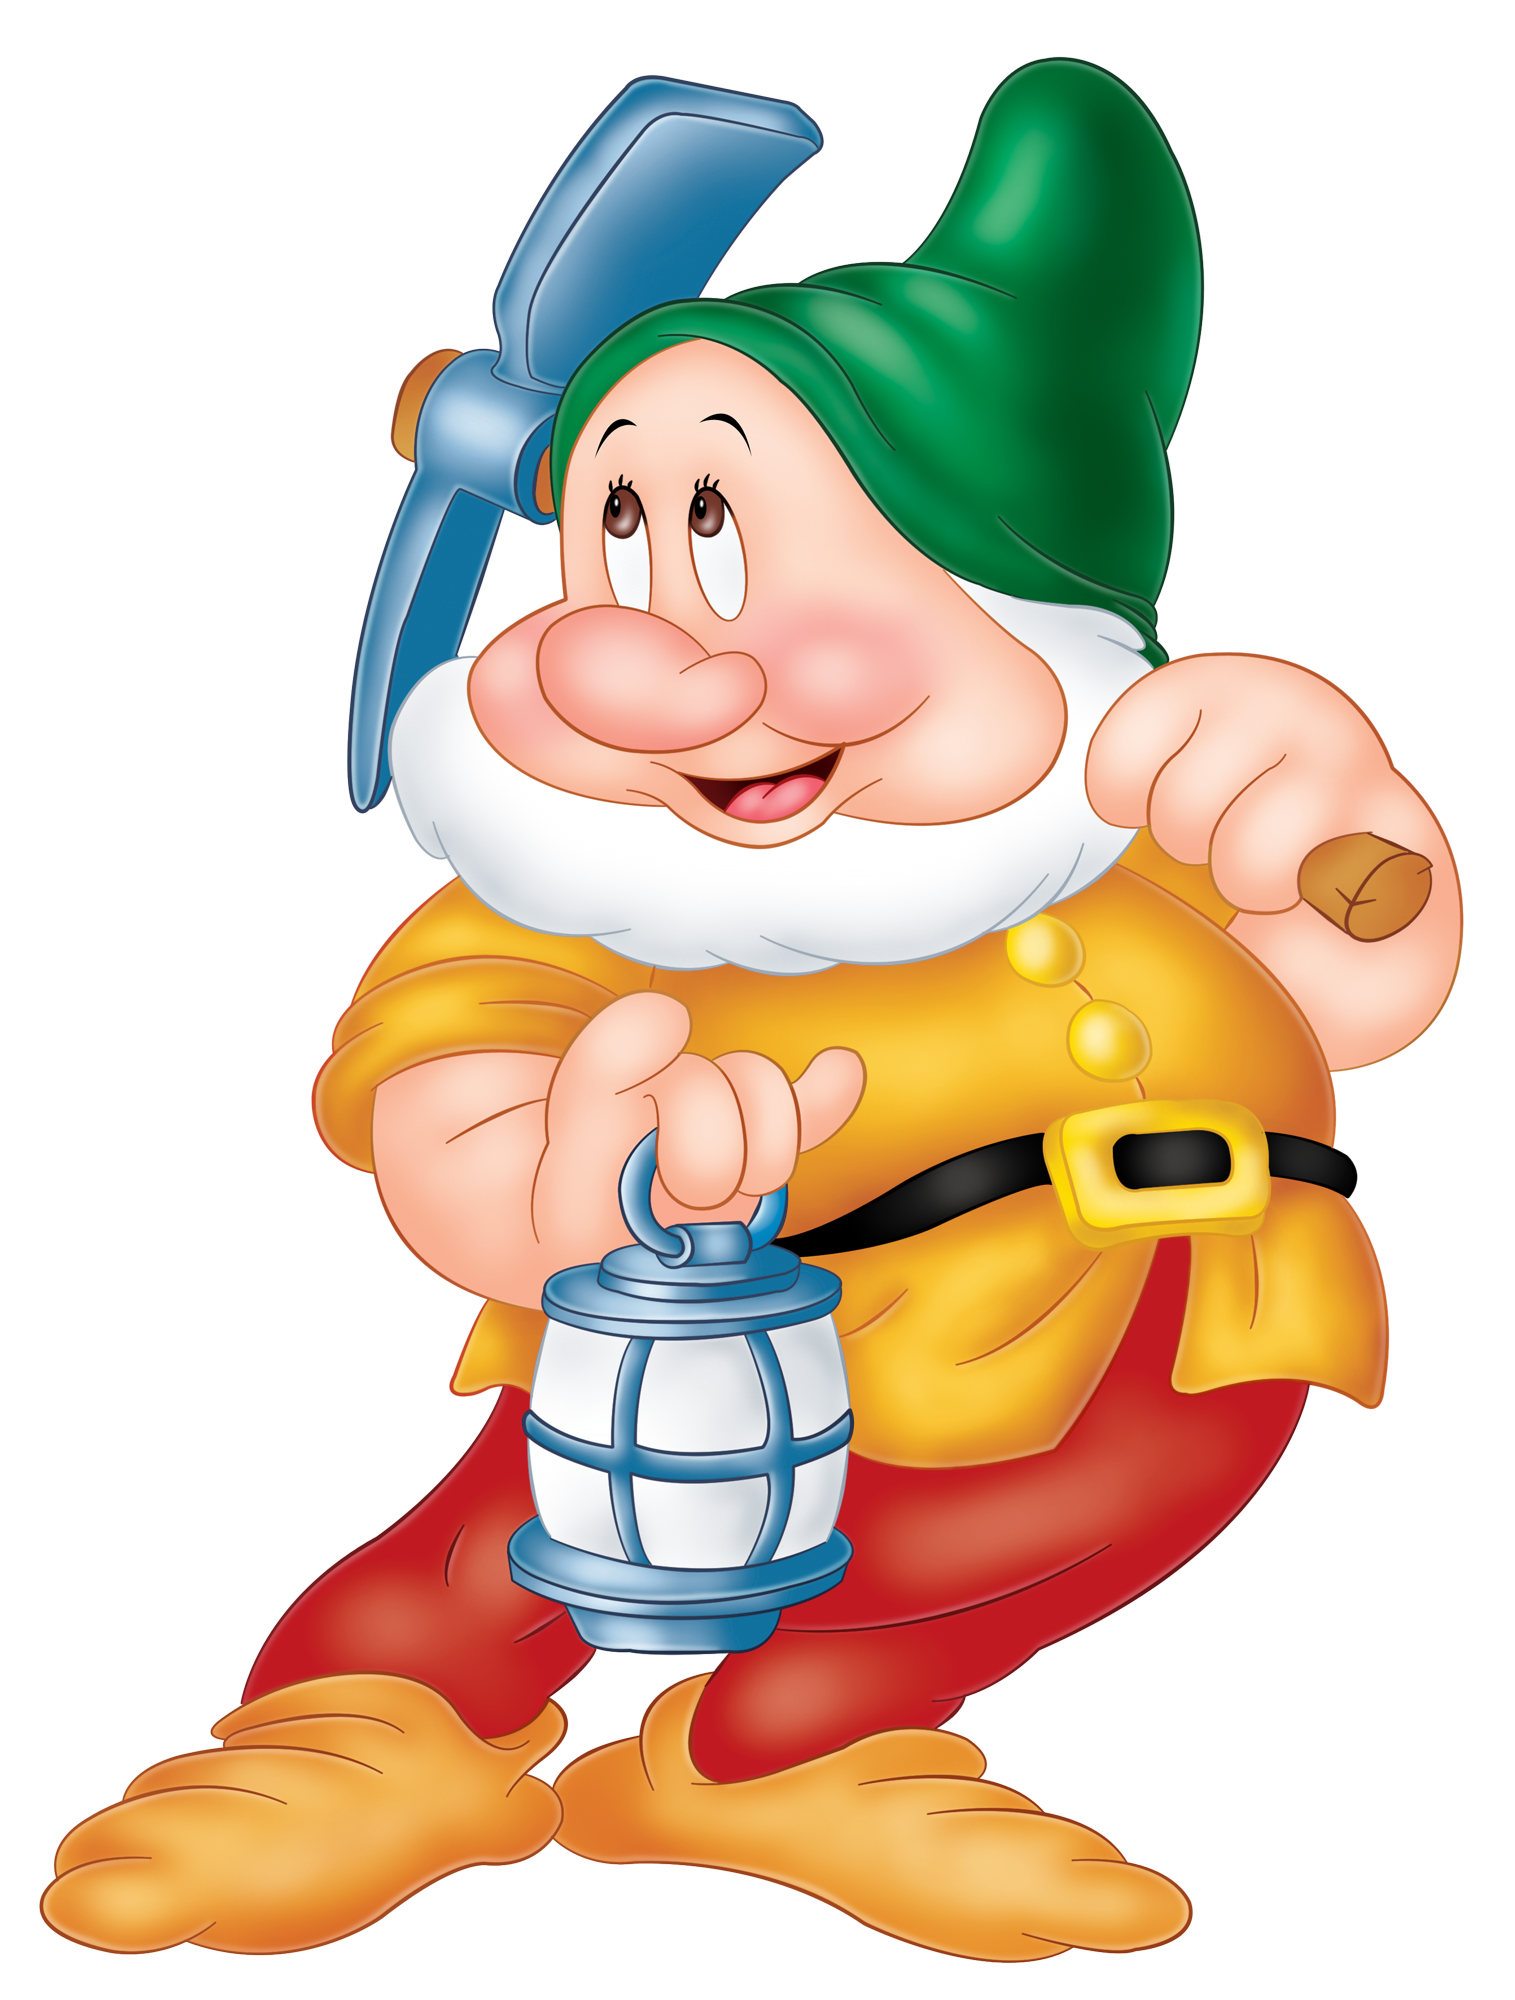 Sneezy Snow White Dwarf PNG Image.